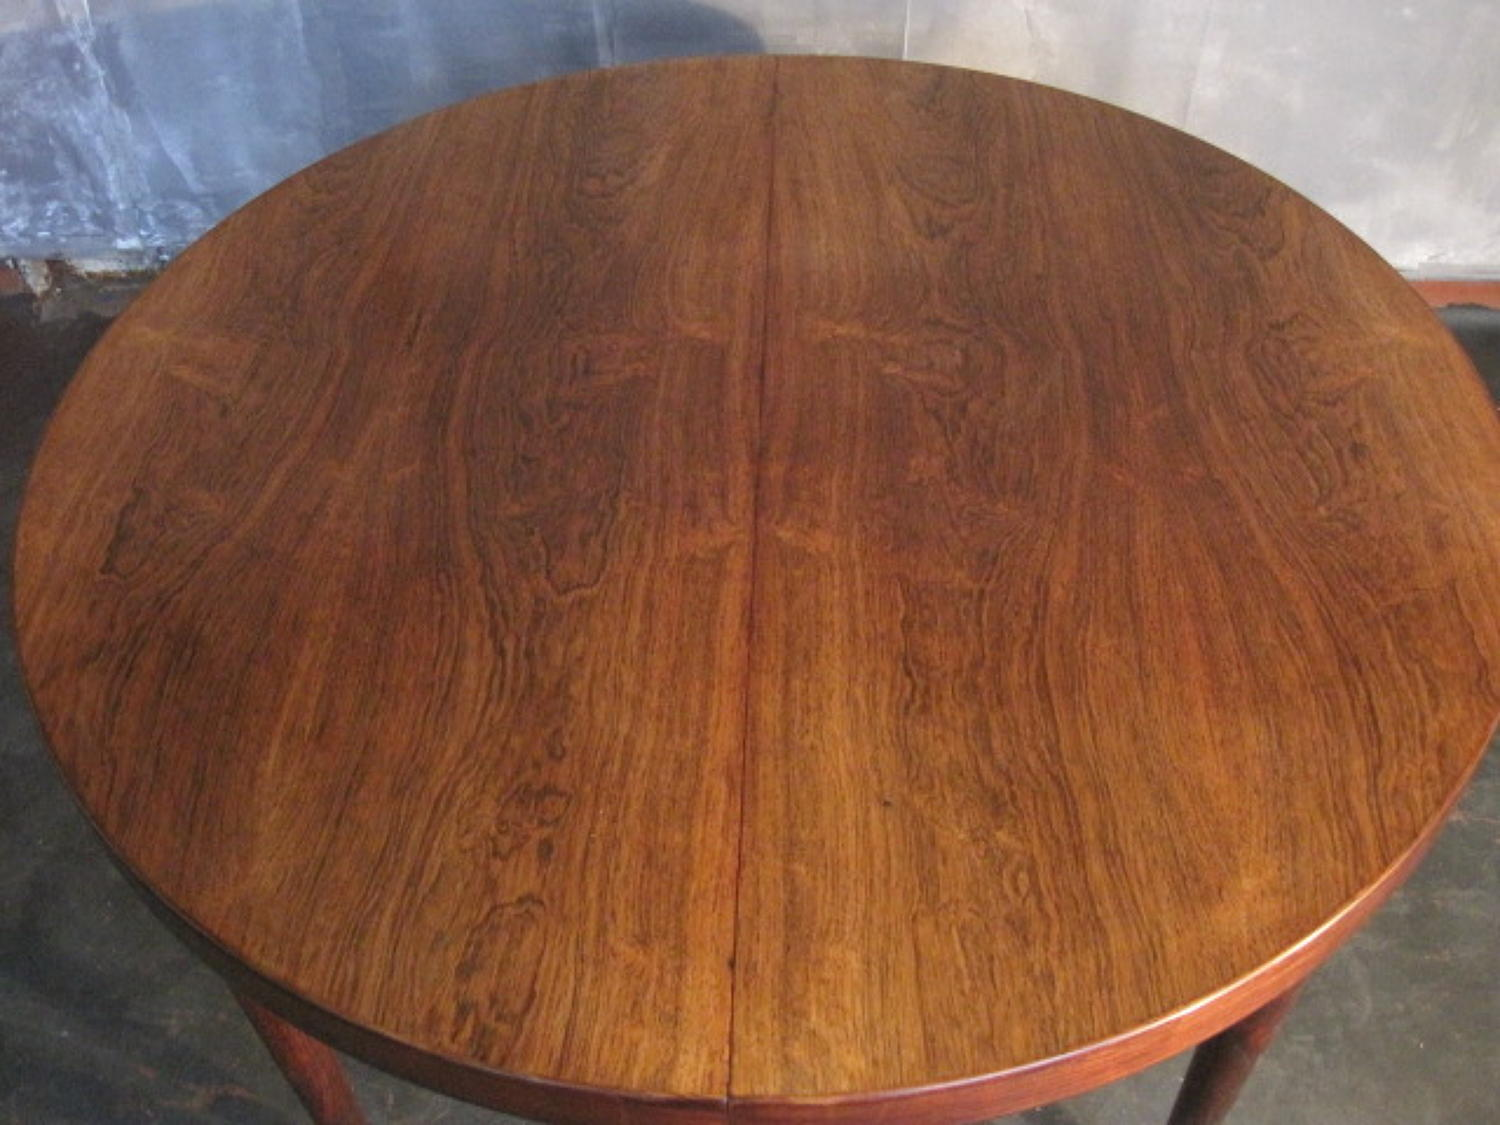 Kai Kristiansen rosewood dining table